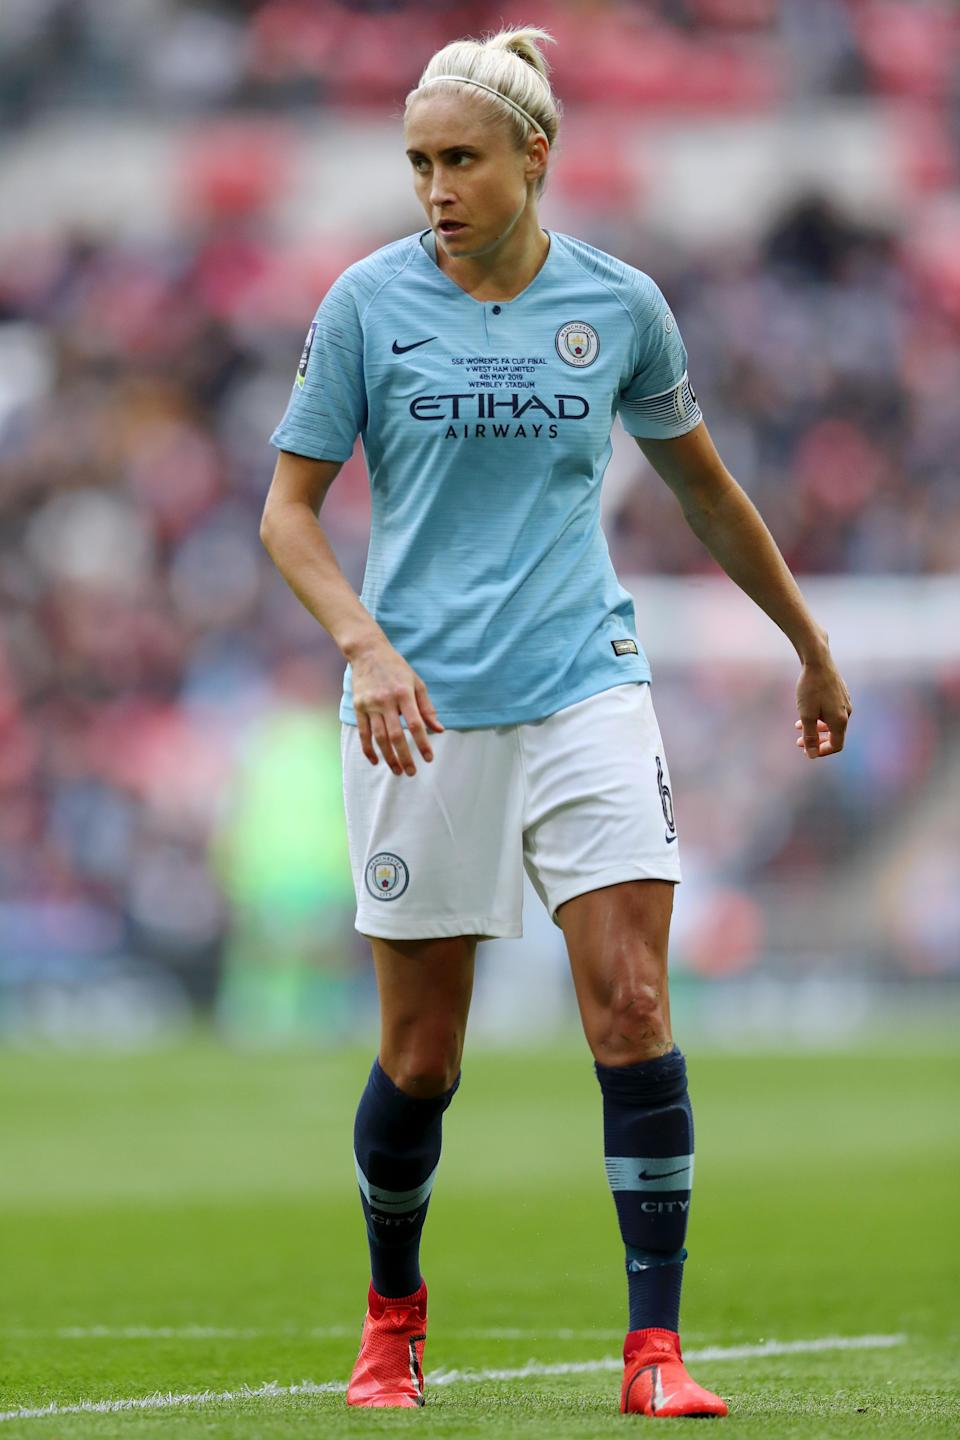 Steph Houghton of Manchester City Women looks on during the Women's FA Cup Final match between Manchester City Women and West Ham United Ladies at Wembley Stadium in London, 2019 (Photo:Naomi Baker/Getty Images)